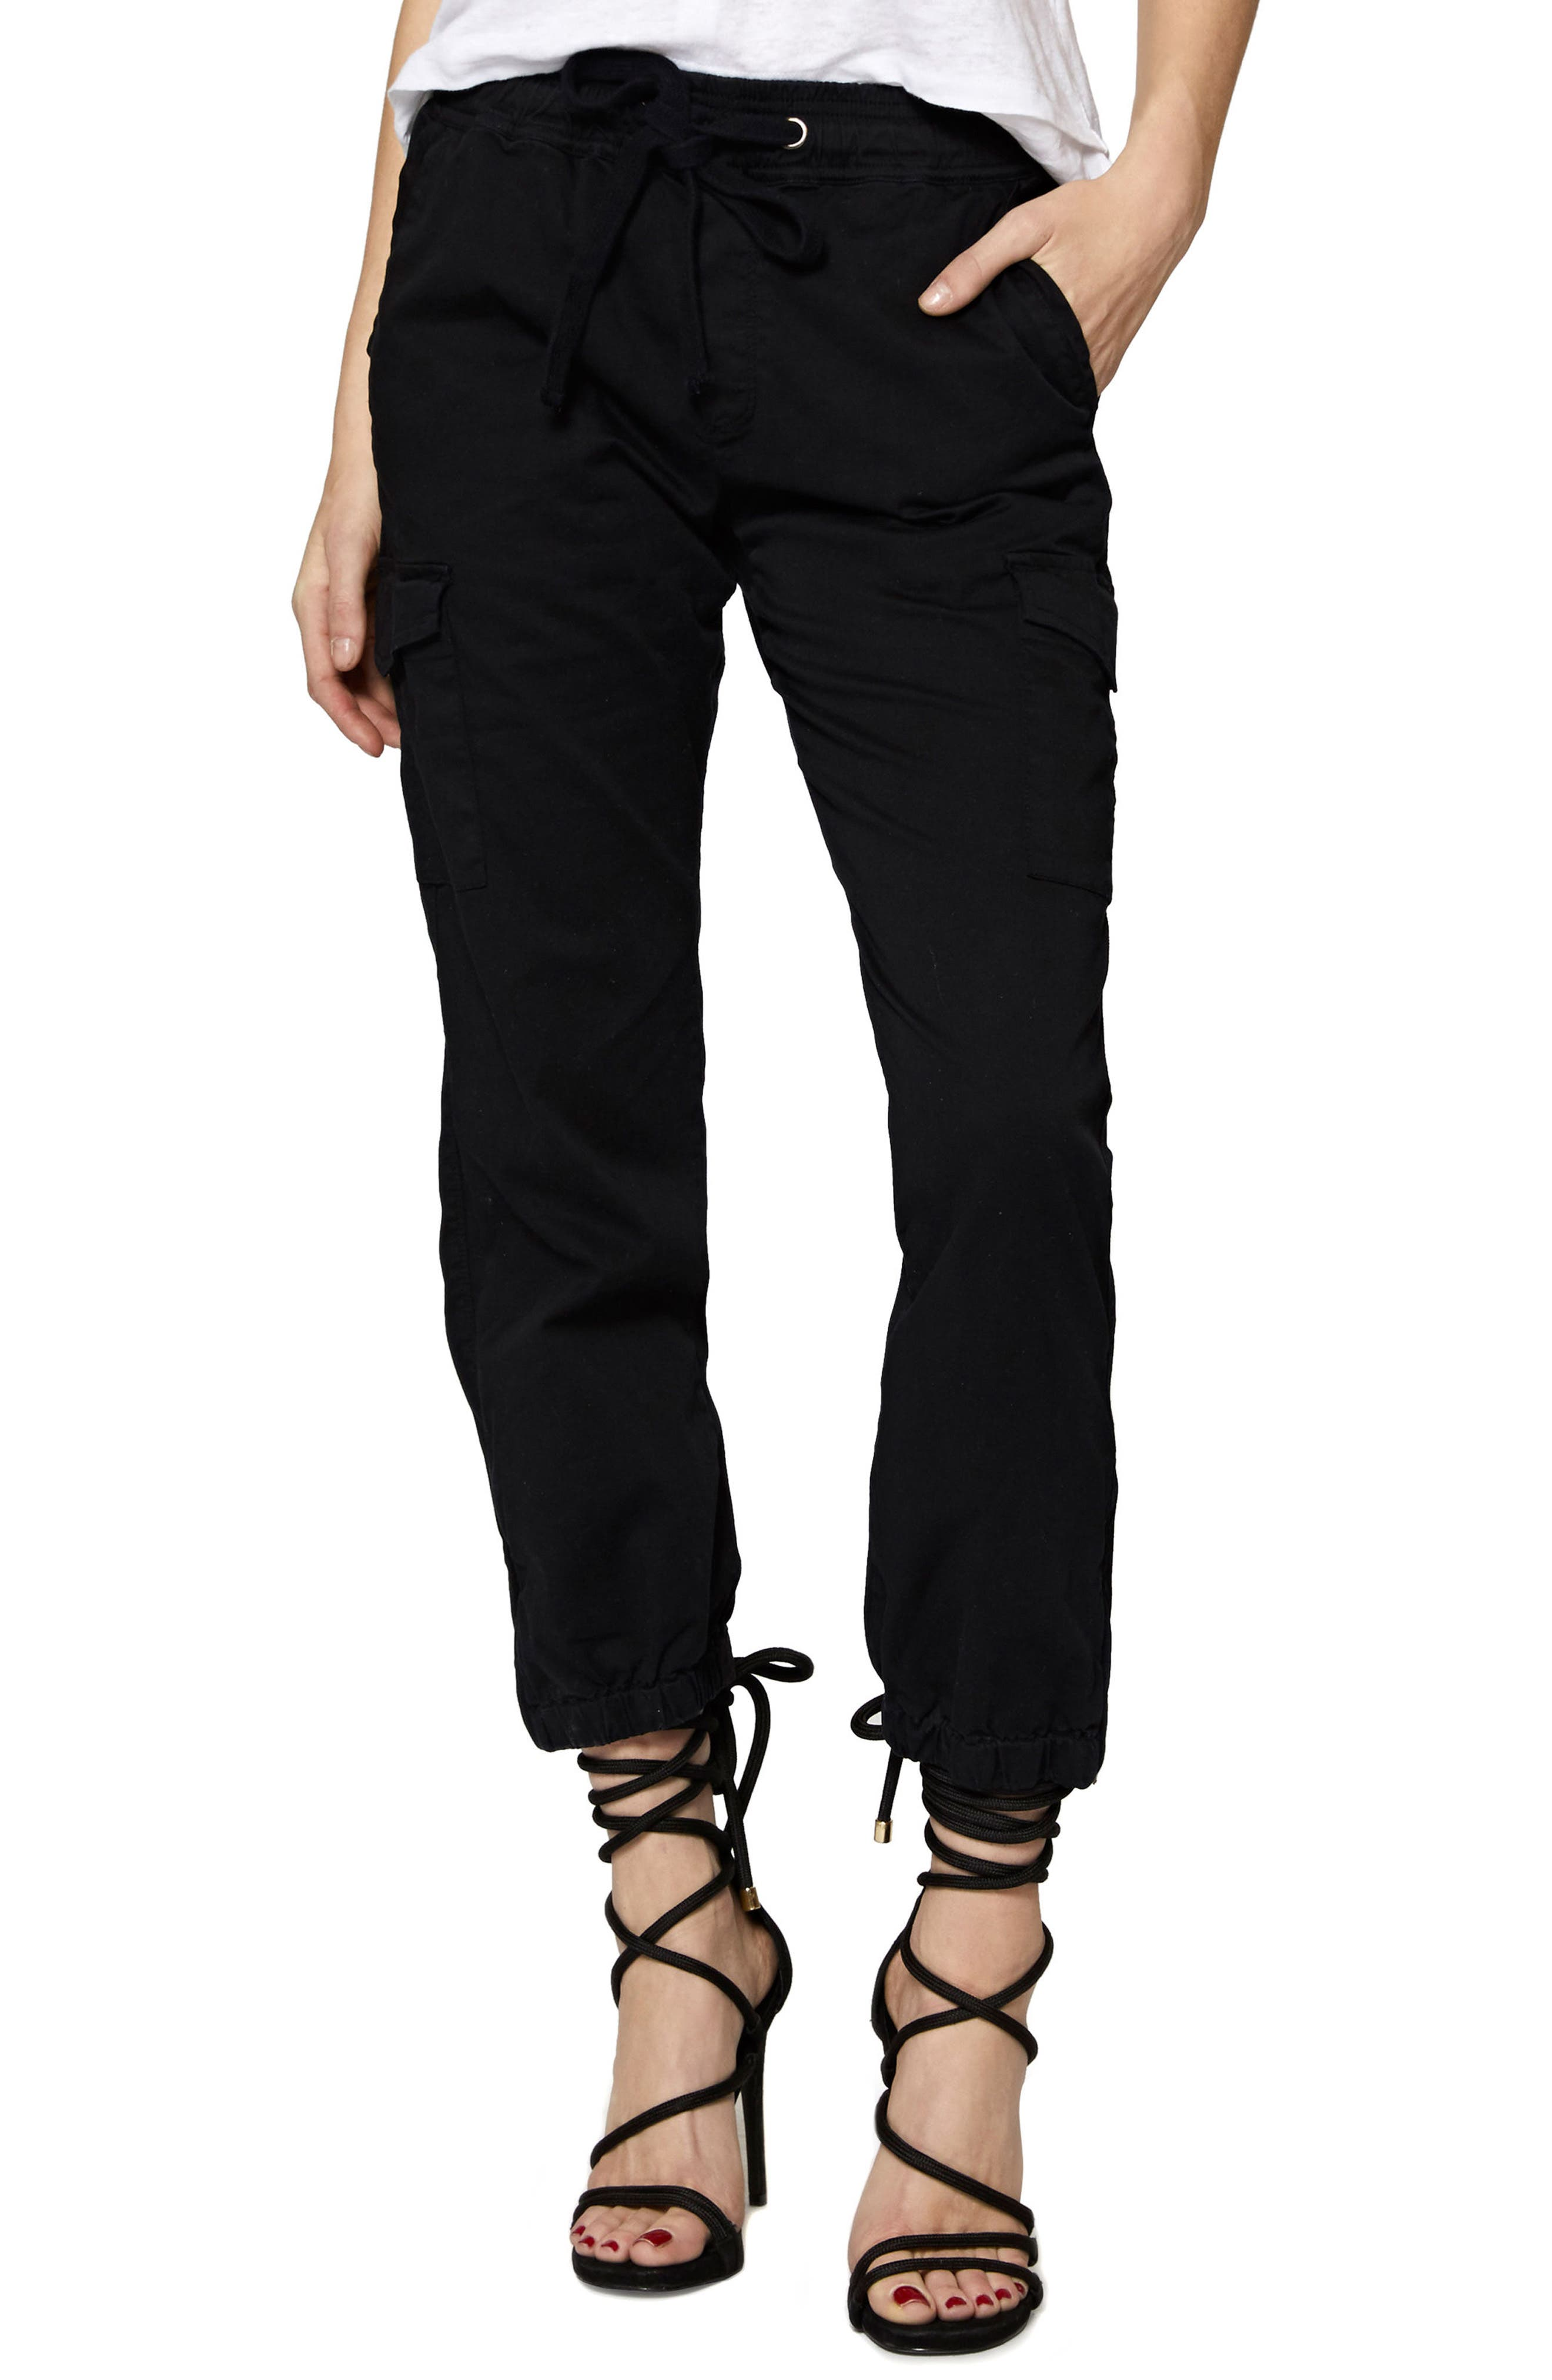 SANCTUARY, Drawstring Trooper Pants, Main thumbnail 1, color, BLACK